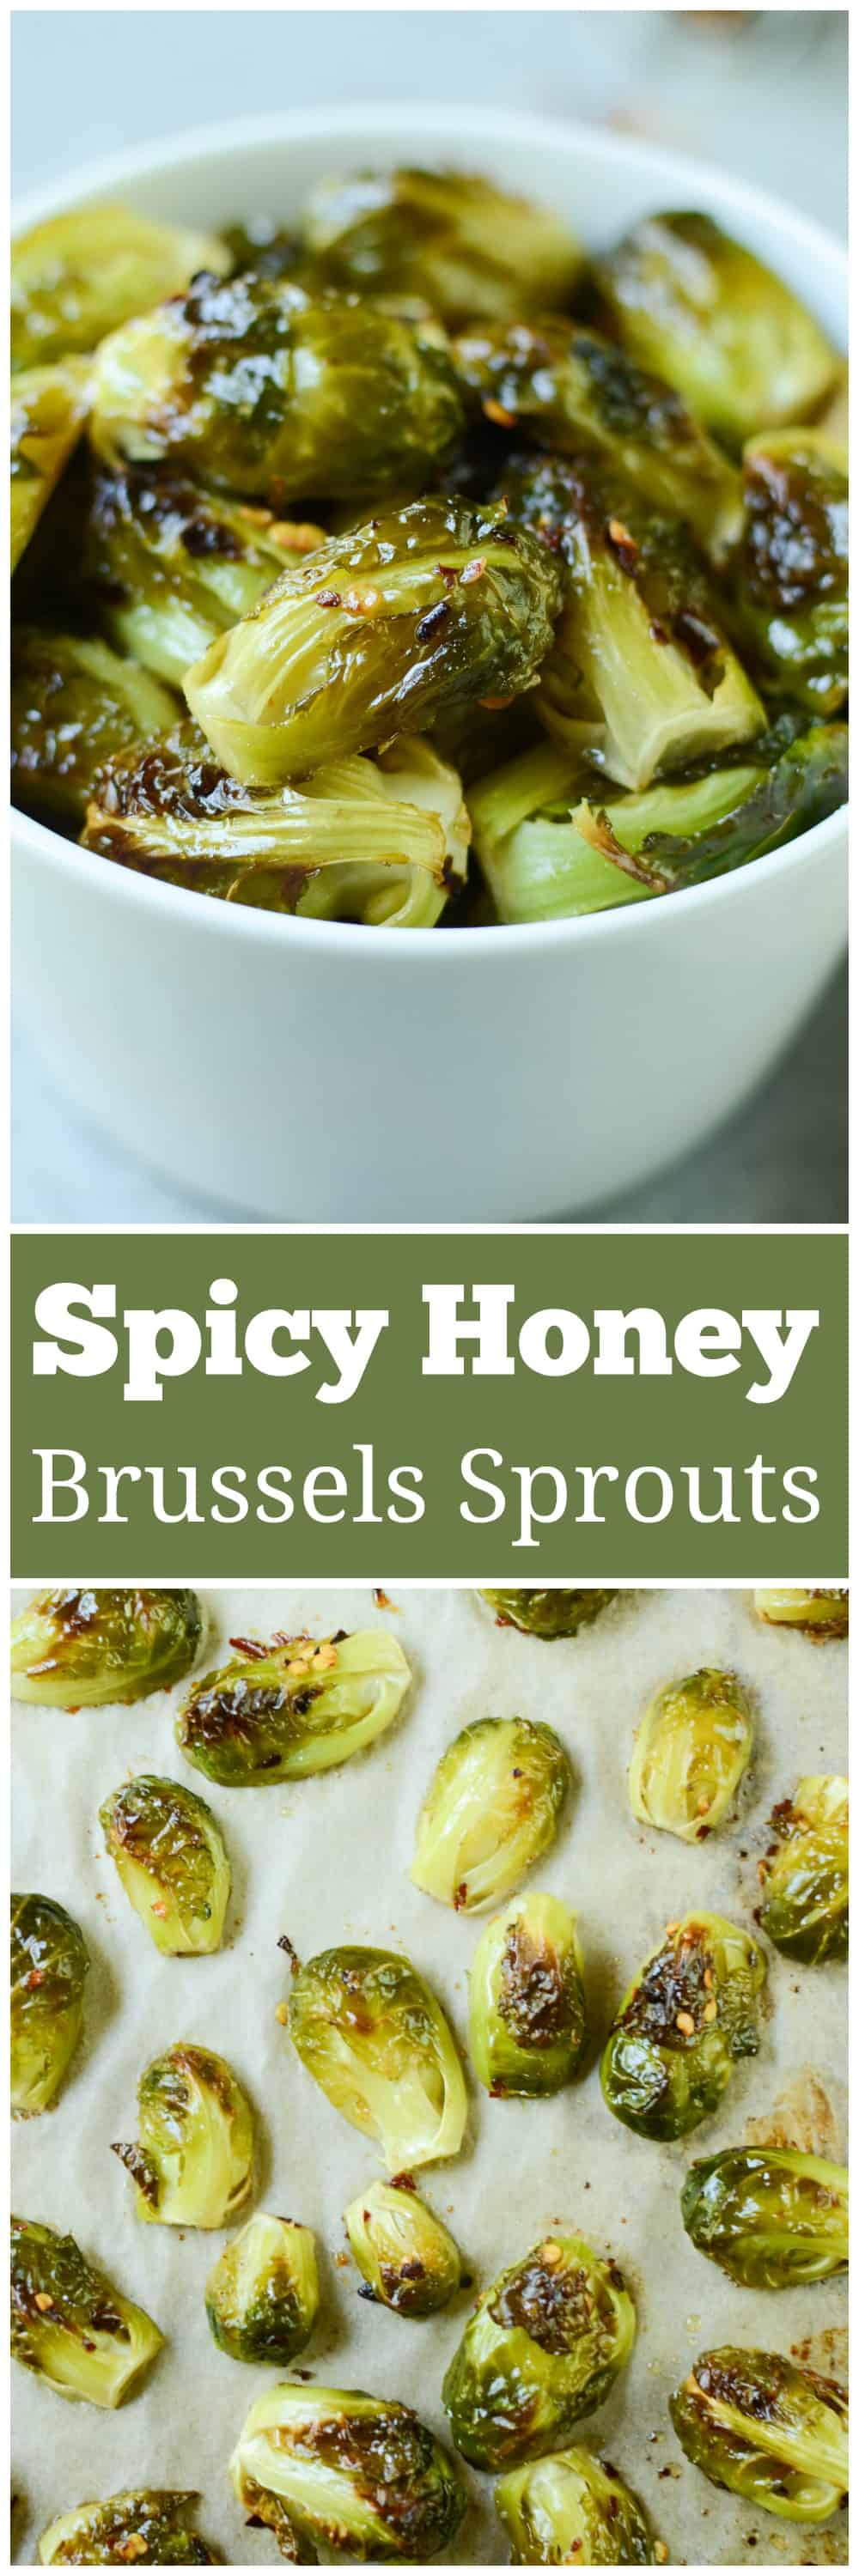 Spicy Honey Roasted Brussels Sprouts - fresh brussels sprouts tossed in a sweet and spicy sauce and roasted until crispy and delicious.